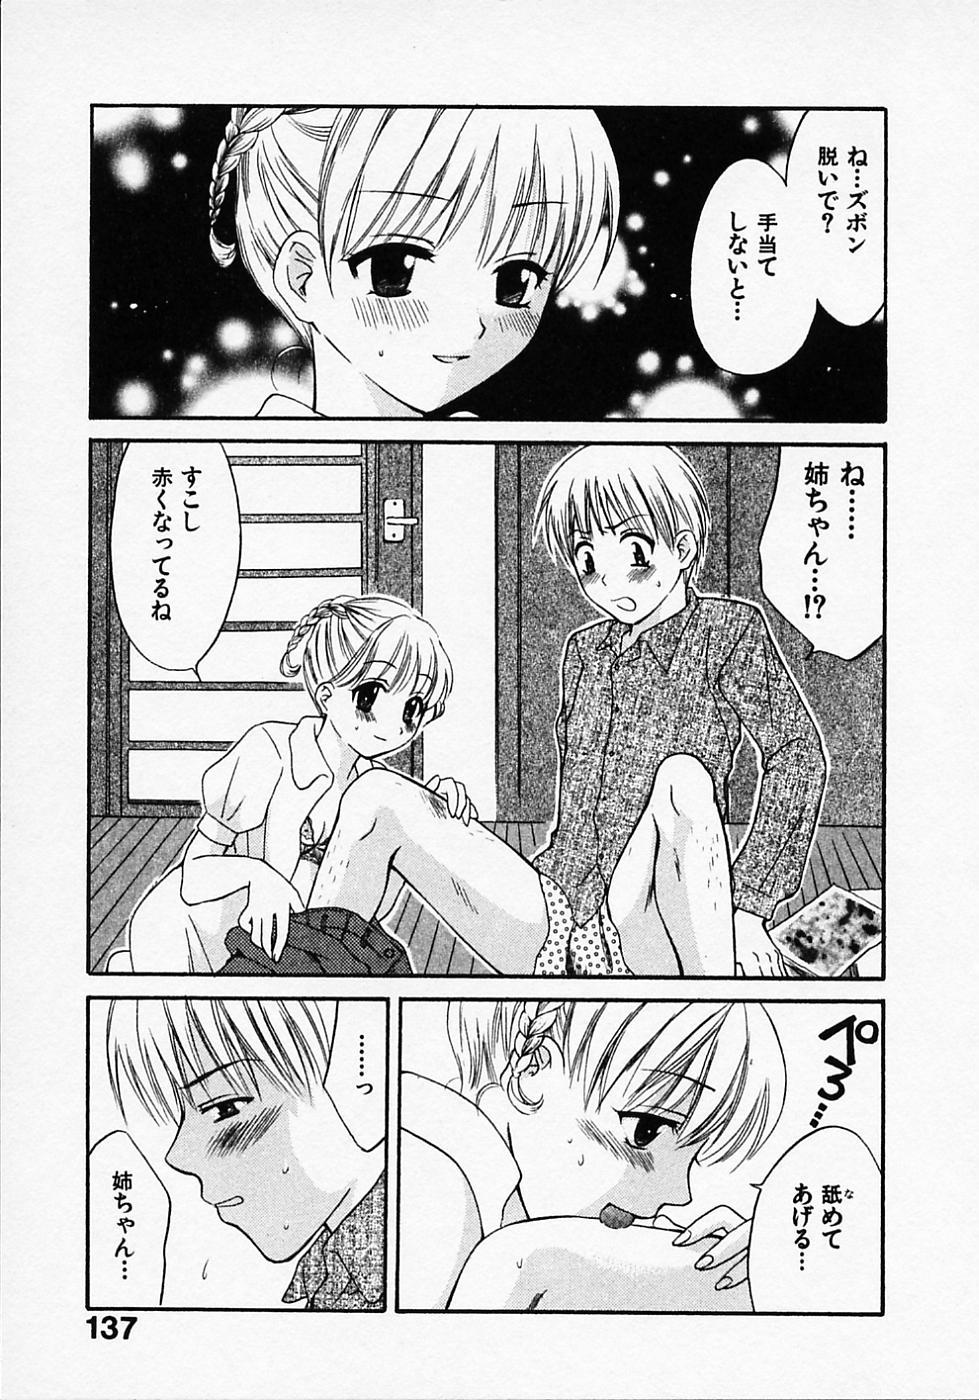 Maid In Japan 140